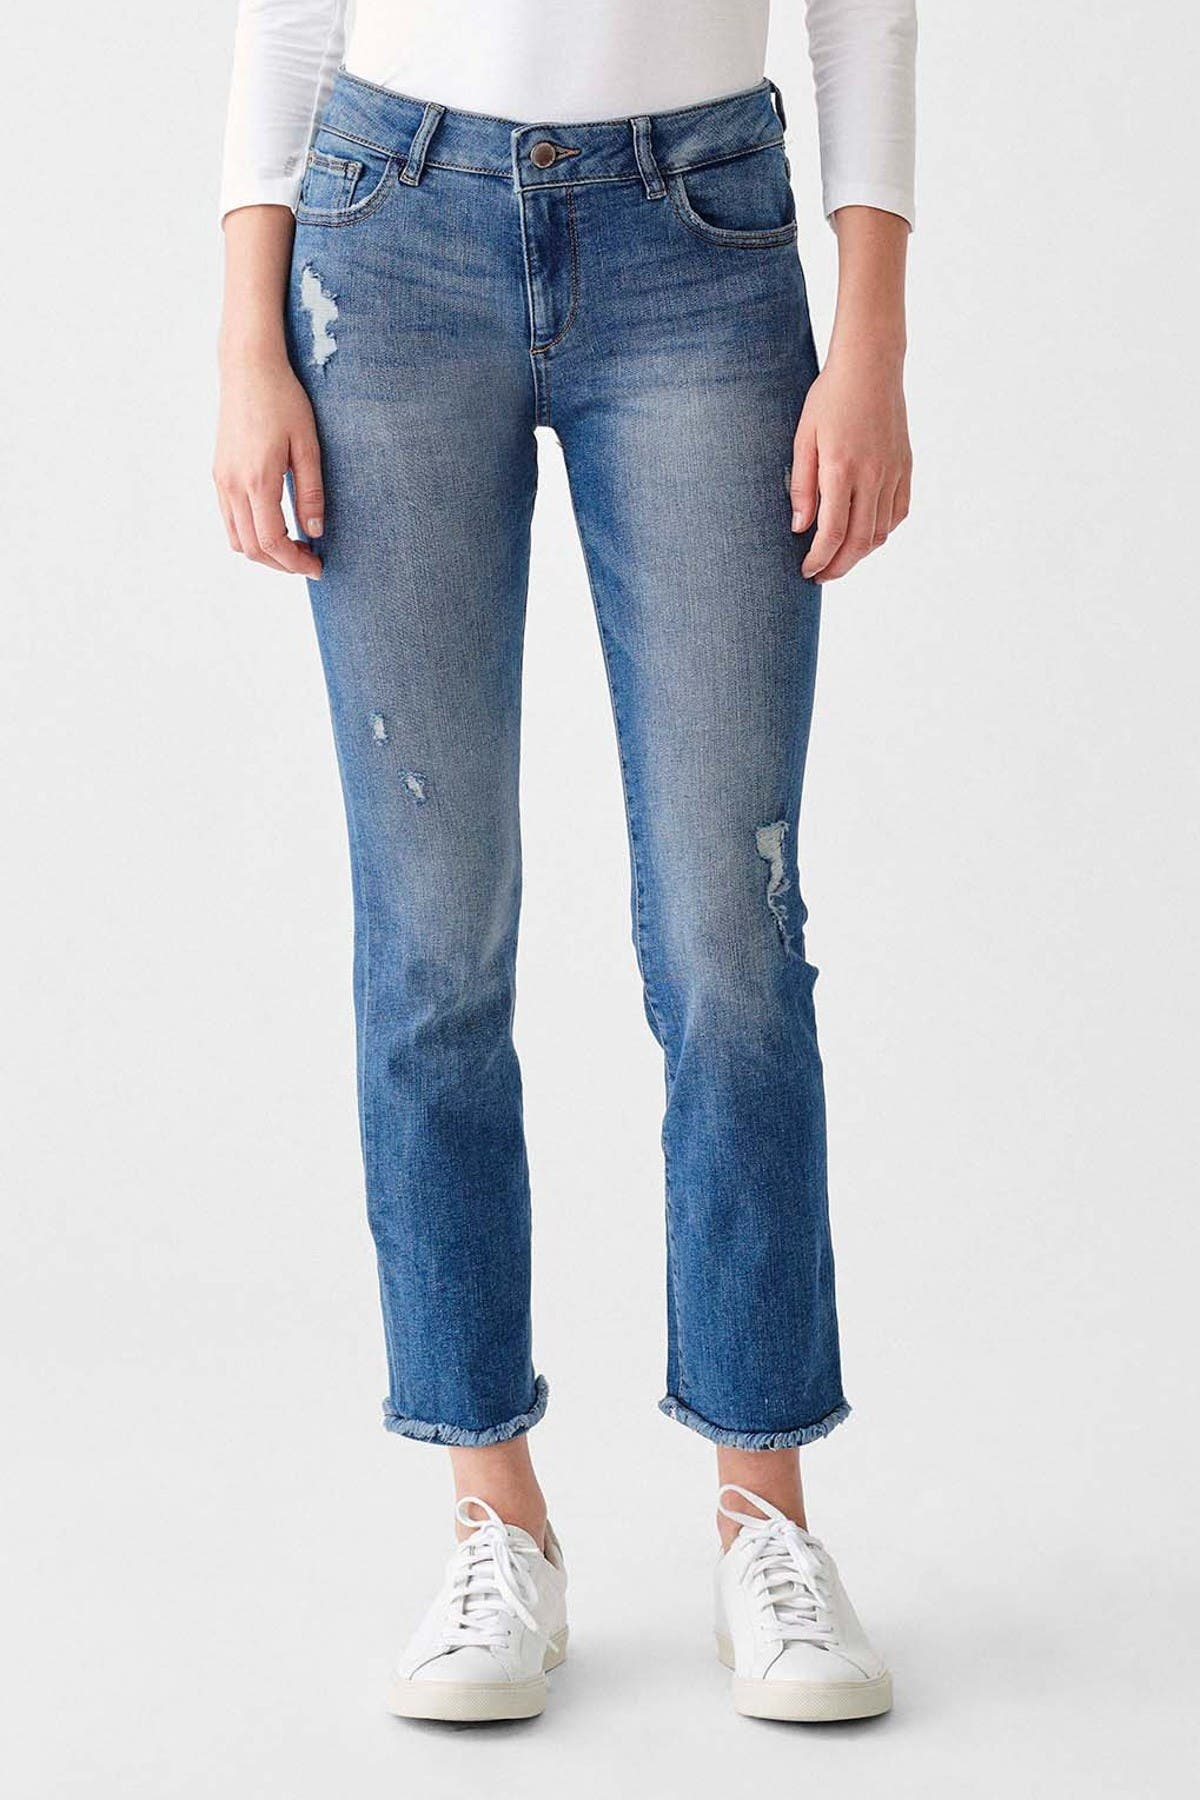 Image of DL1961 Mara Straight Leg Jeans